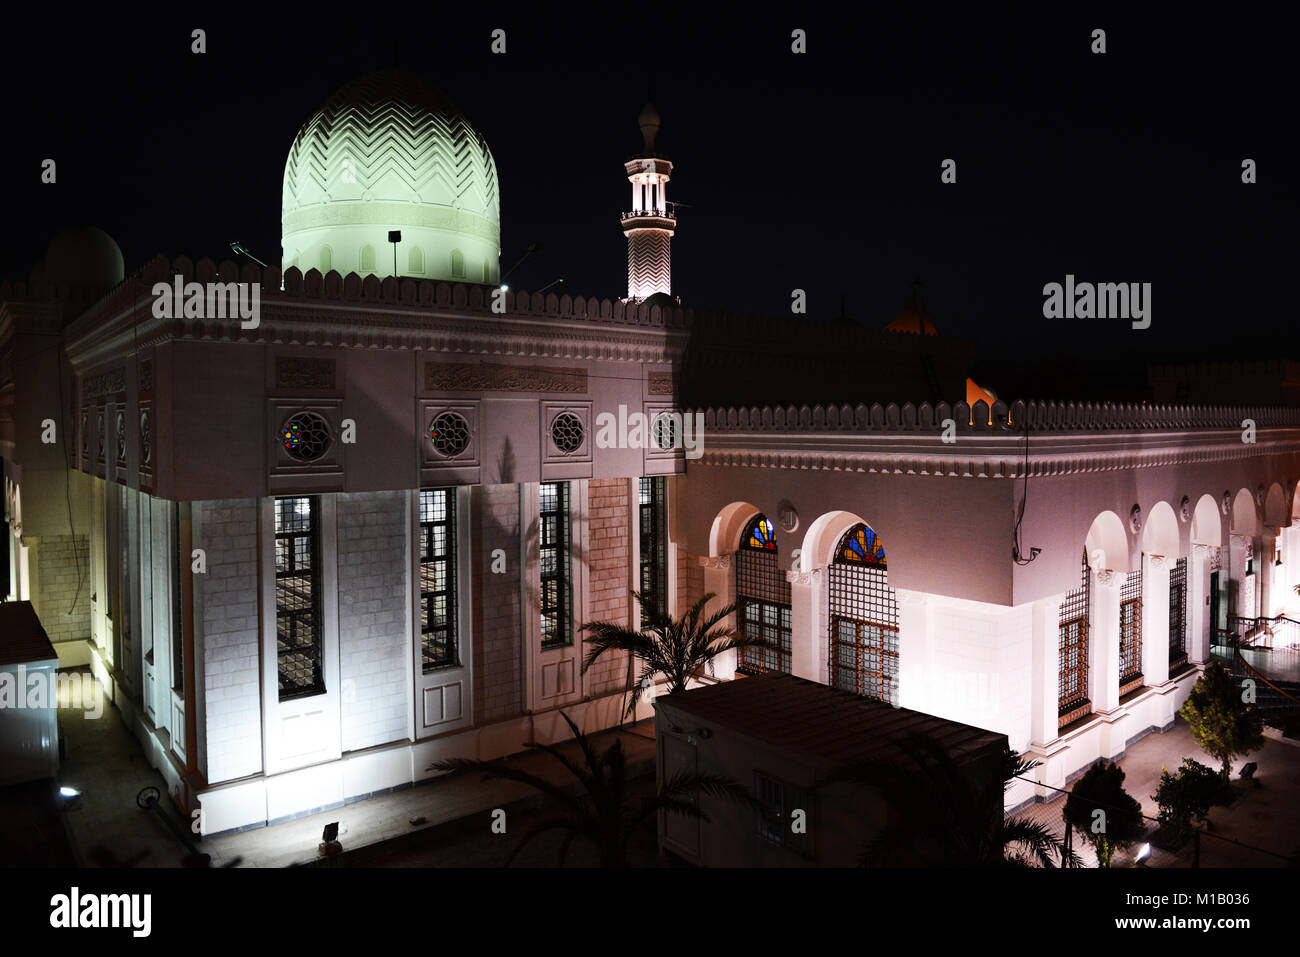 Sharif Hussein bin Ali Mosque at night. - Stock Image